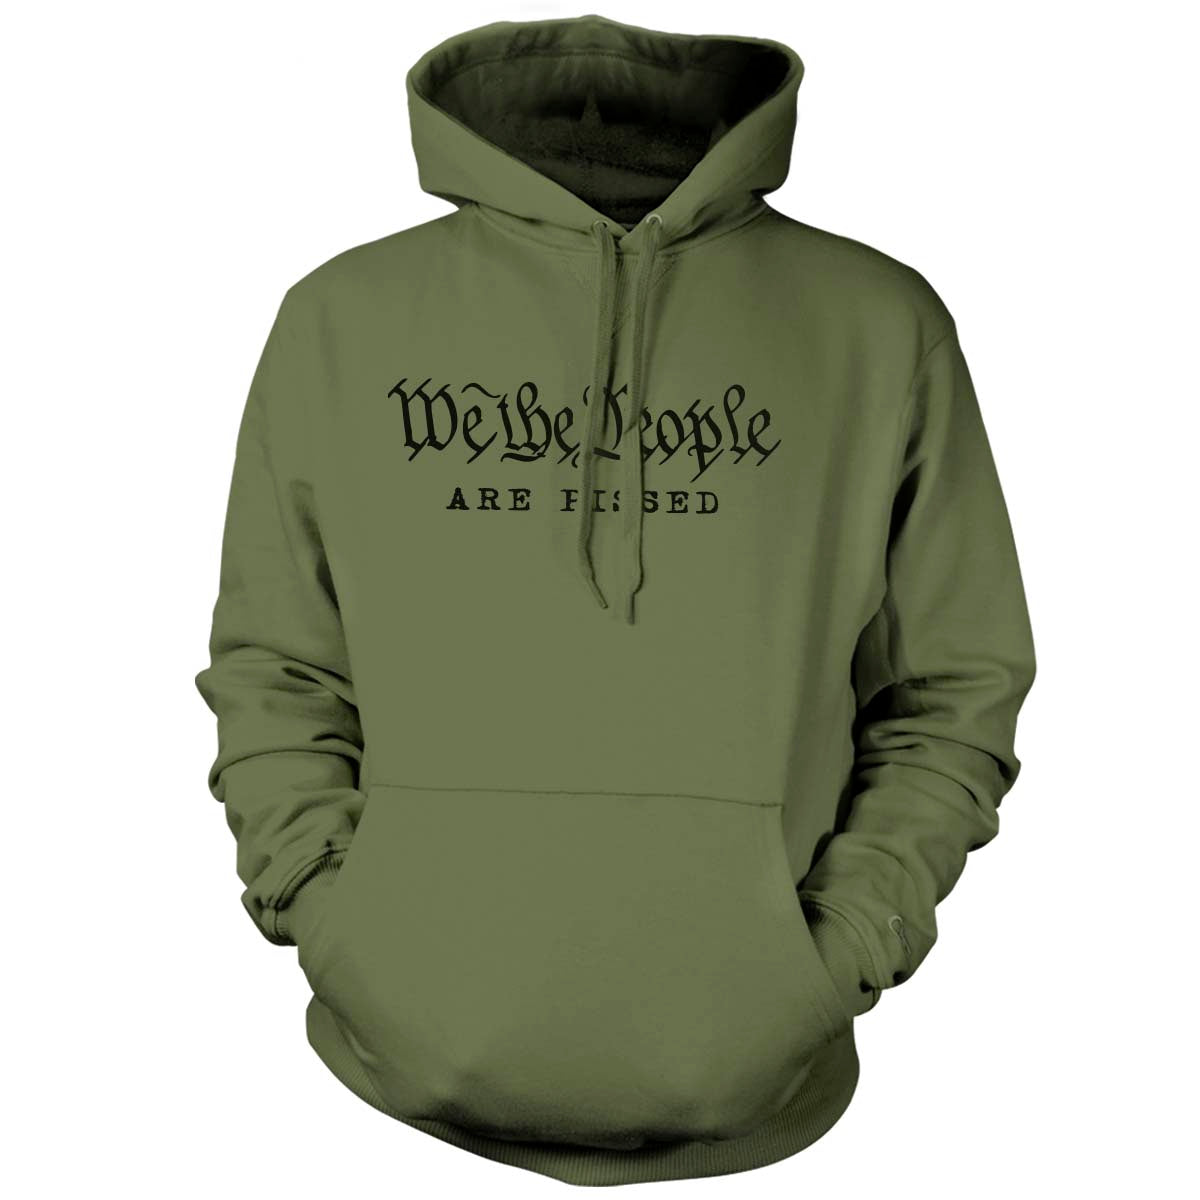 We The People Are Pissed - Hoodie - Military Green - Hoodies - Pipe Hitters Union